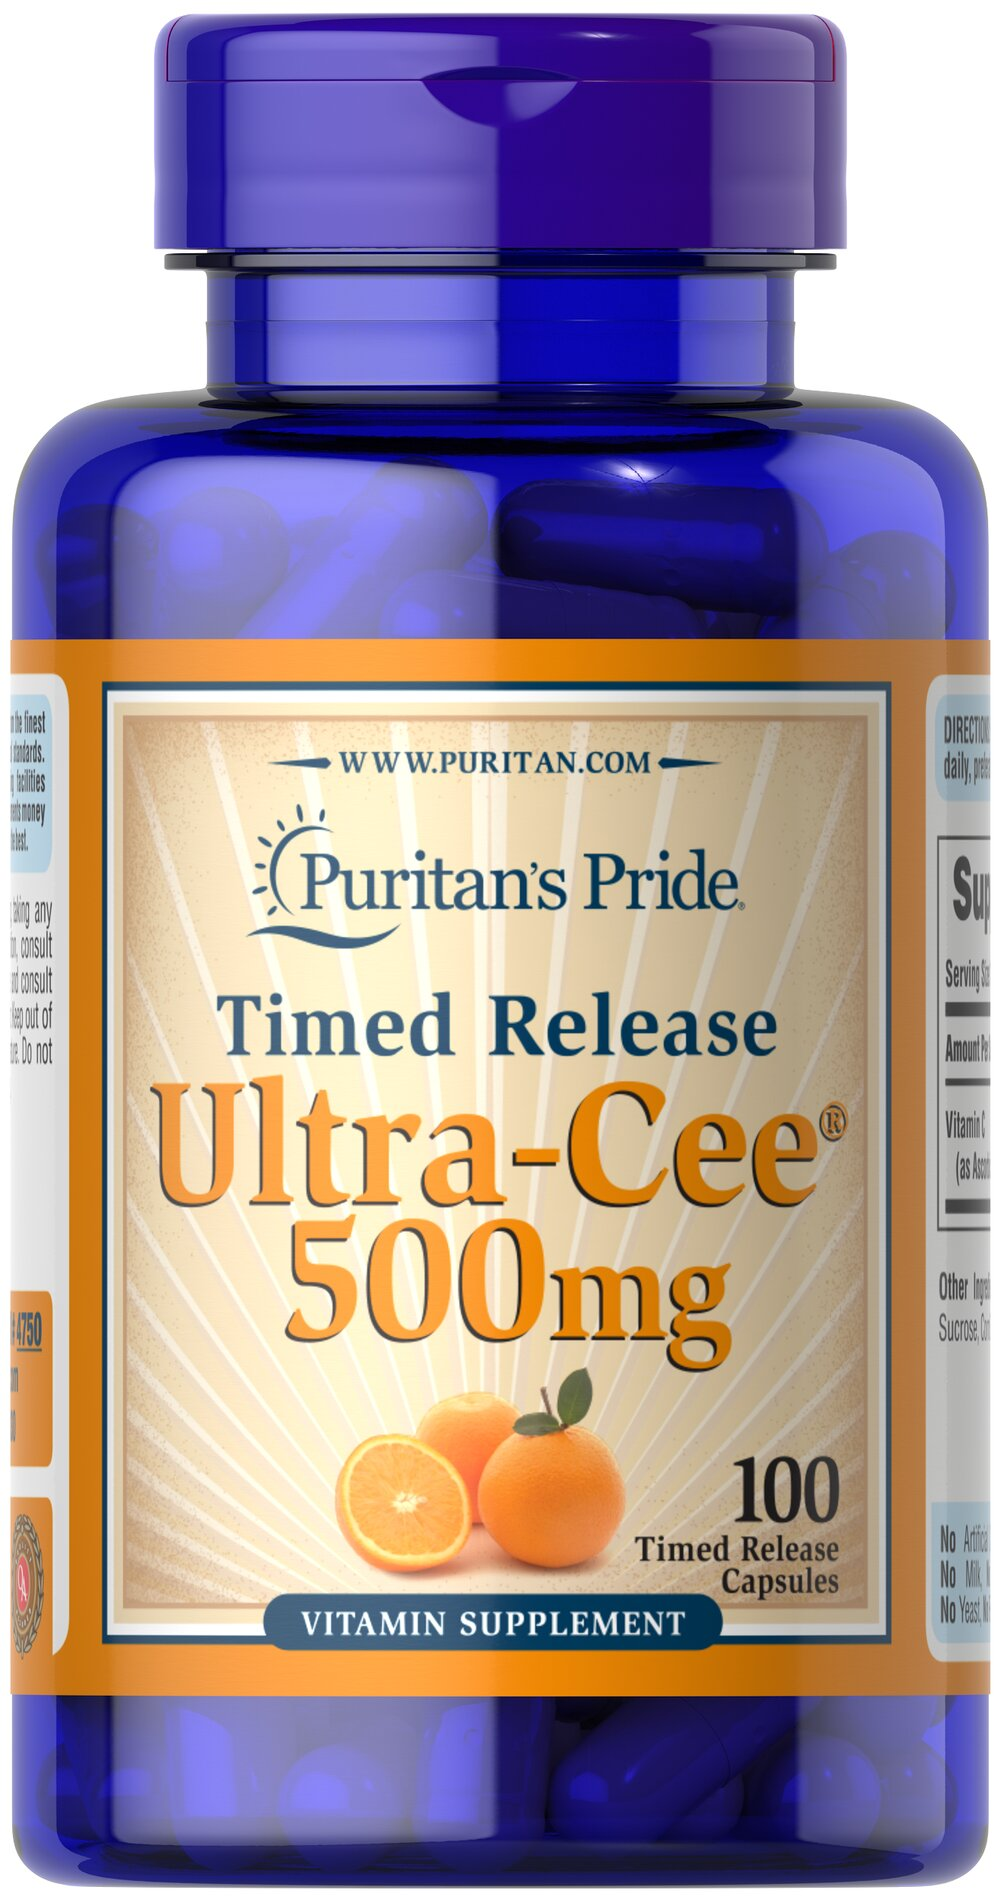 Ultra Cee® 500 mg Time Release <p><strong>Time Released</strong></p><p>Vitamin C is essential to many functions in the body and is one of the leading vitamins for immune support and helps fight the cell-damaging free radicals that can lead to oxidative stress and premature aging of cells. The Vitamin C in this product has been designed to be released over a prolonged period of time.</p><p>Offers superior antioxidant support.**</p><p>Supp